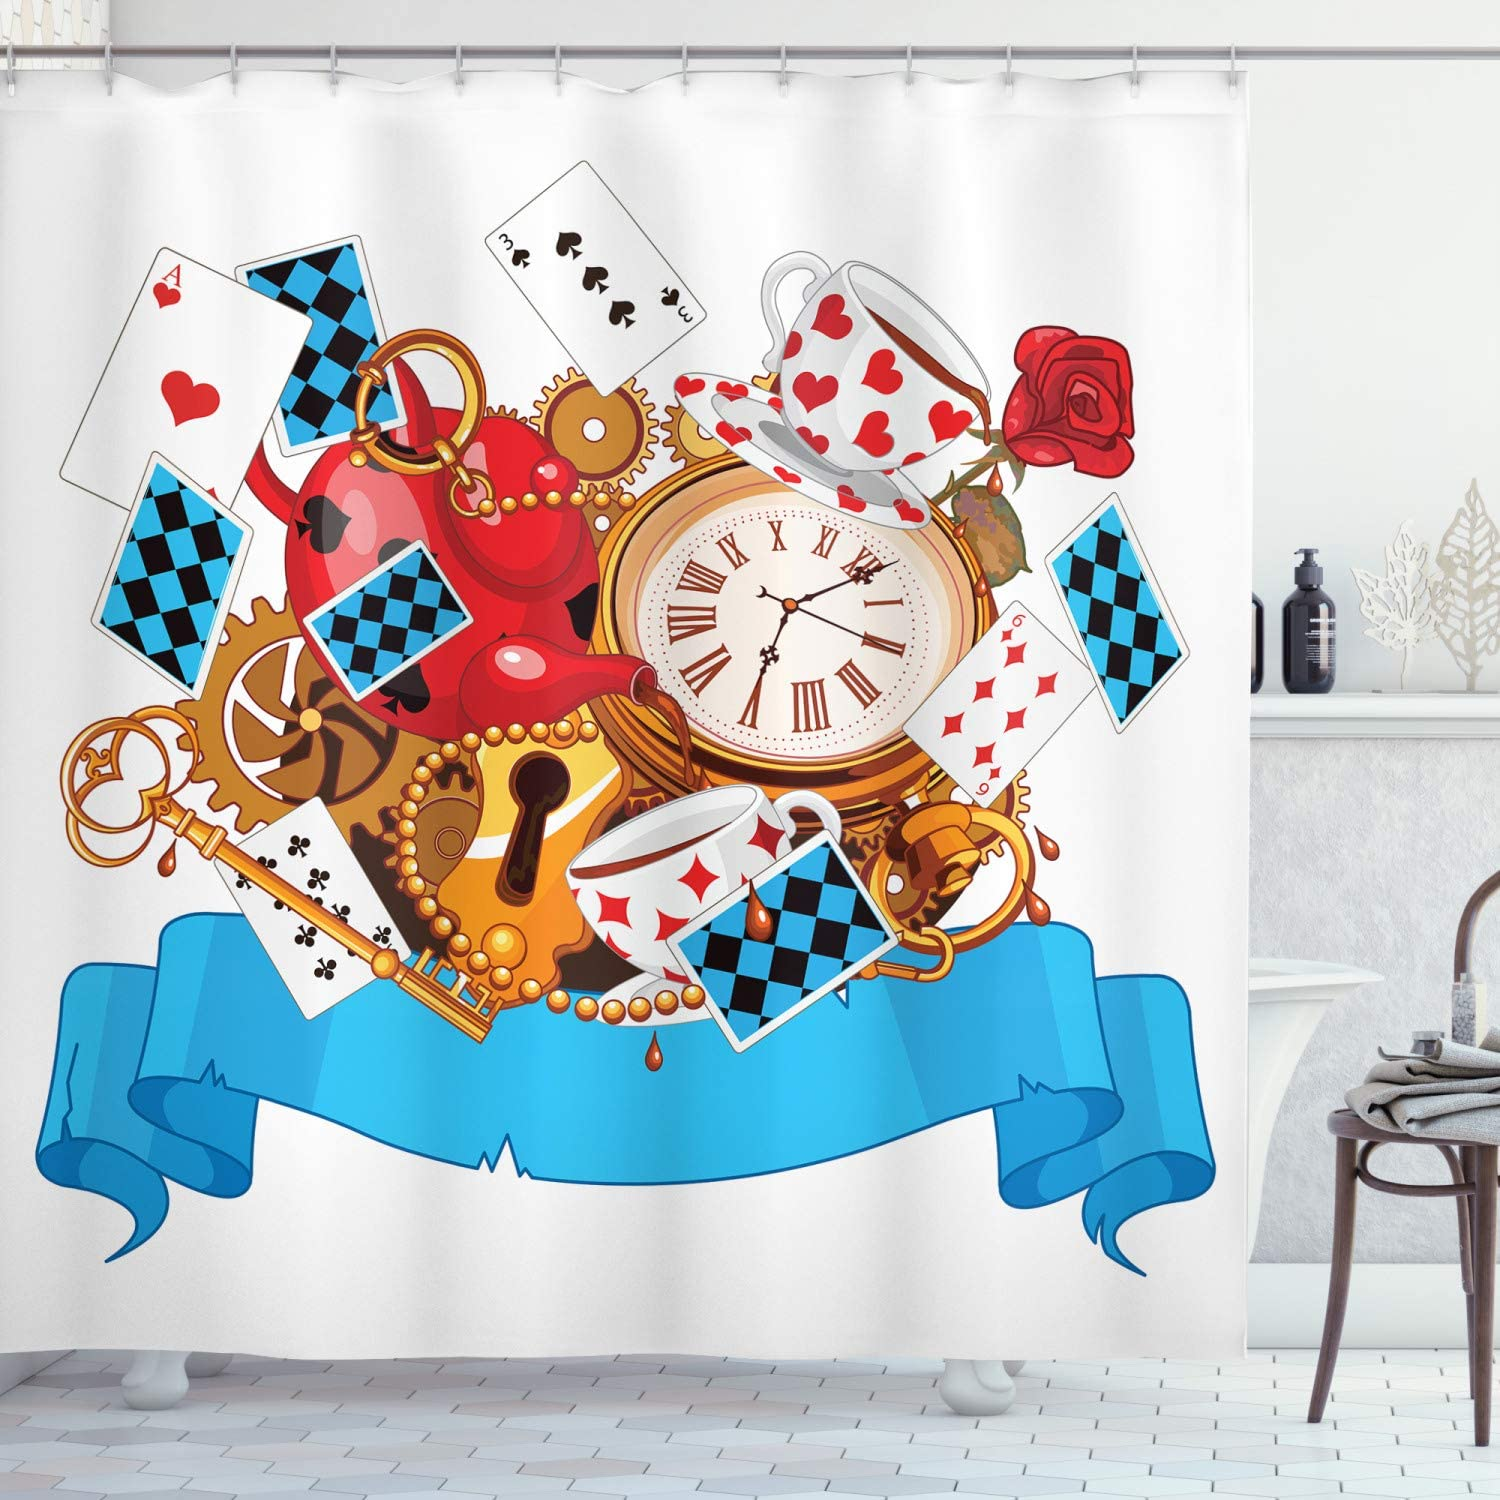 "Ambesonne Alice in Wonderland Shower Curtain, Mad Design of Cards Clocks Tea Pots Keys Flowers Fantasy World Artwork, Cloth Fabric Bathroom Decor Set with Hooks, 84"" Long Extra, Blue White"